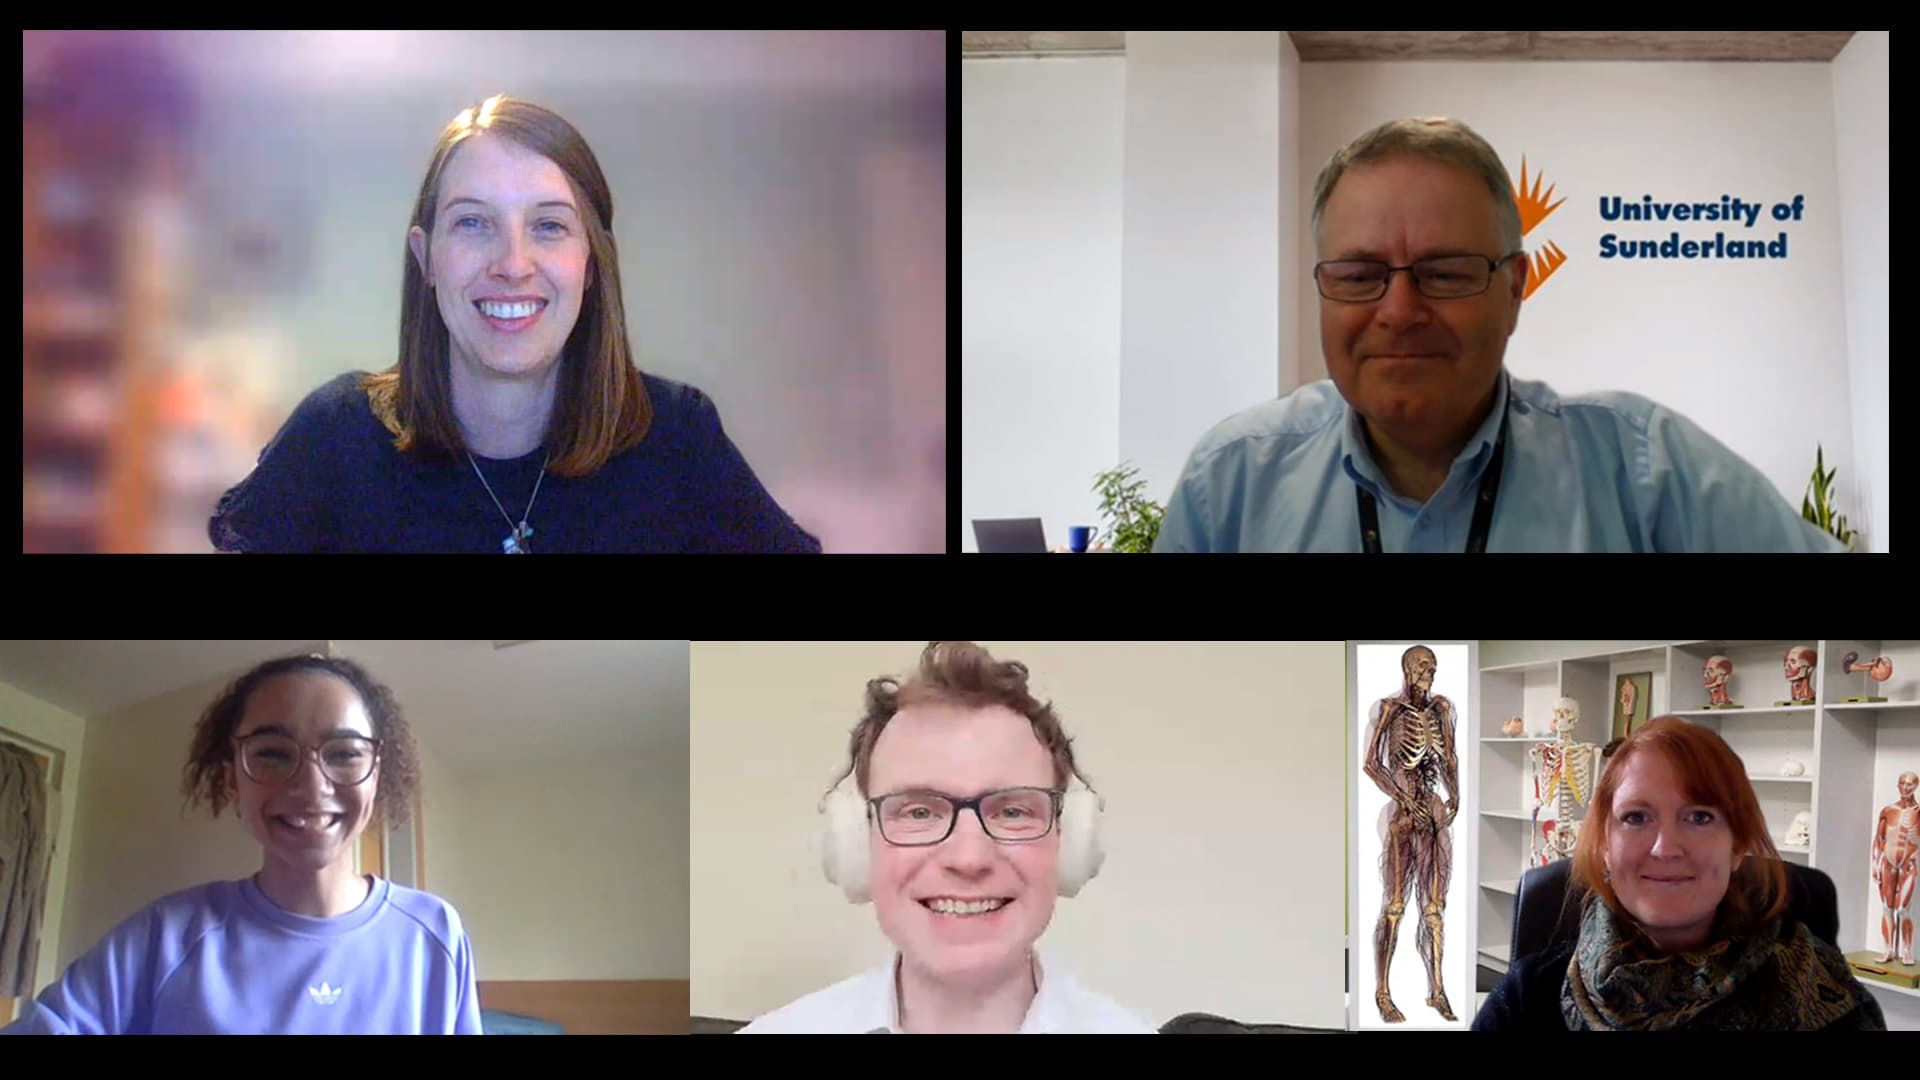 Still from medicine webcast recording showing host and panel members online